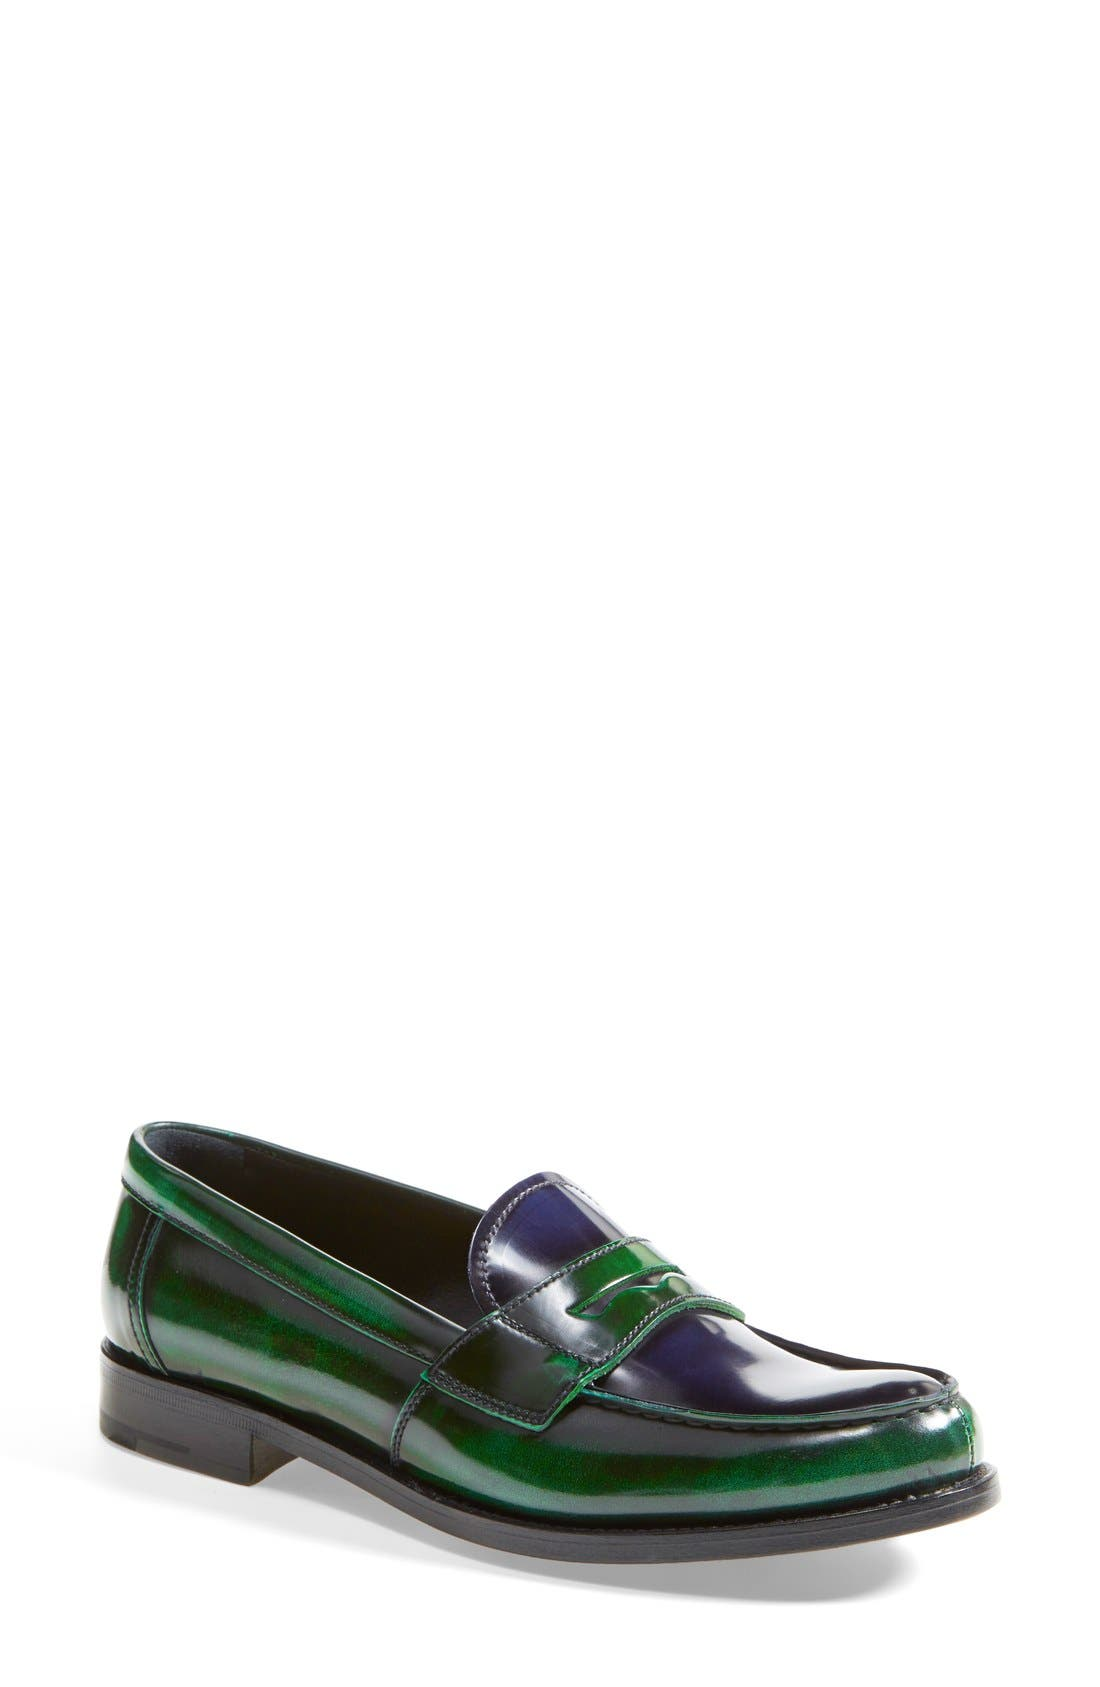 Alternate Image 1 Selected - Prada Bicolor Leather Penny Loafer (Women)